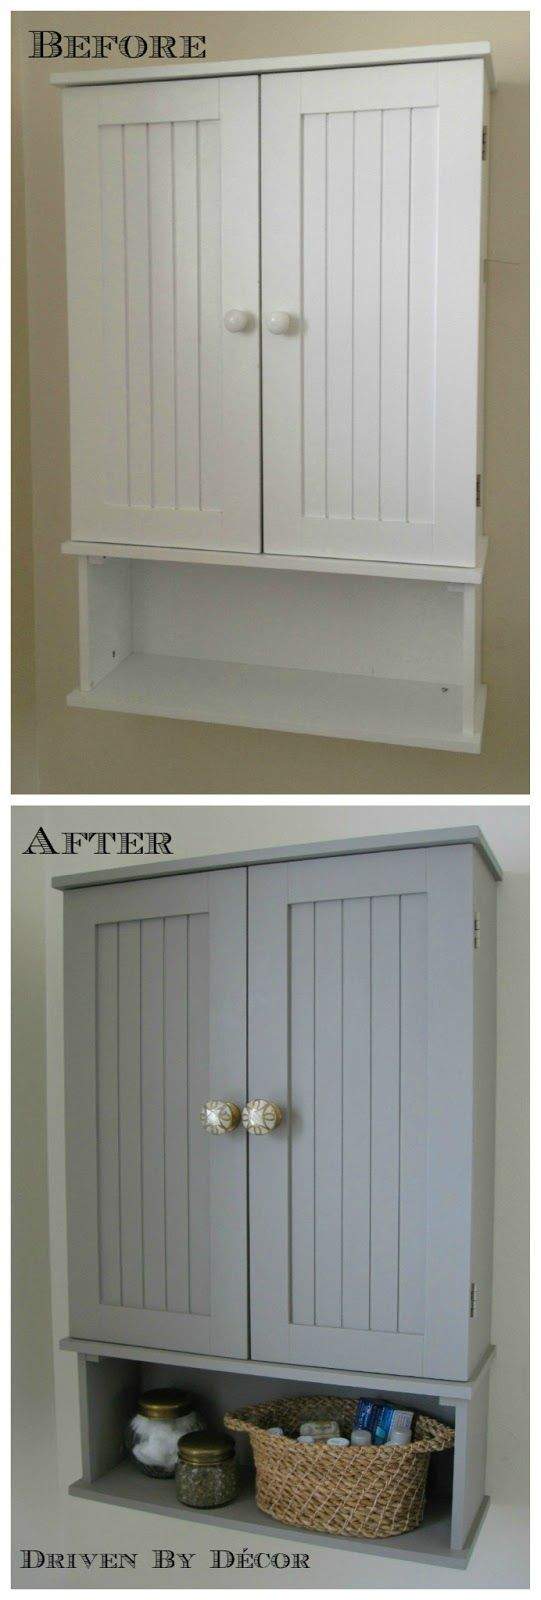 113 best images about space fillers on pinterest wooden for Why are cabinets so expensive